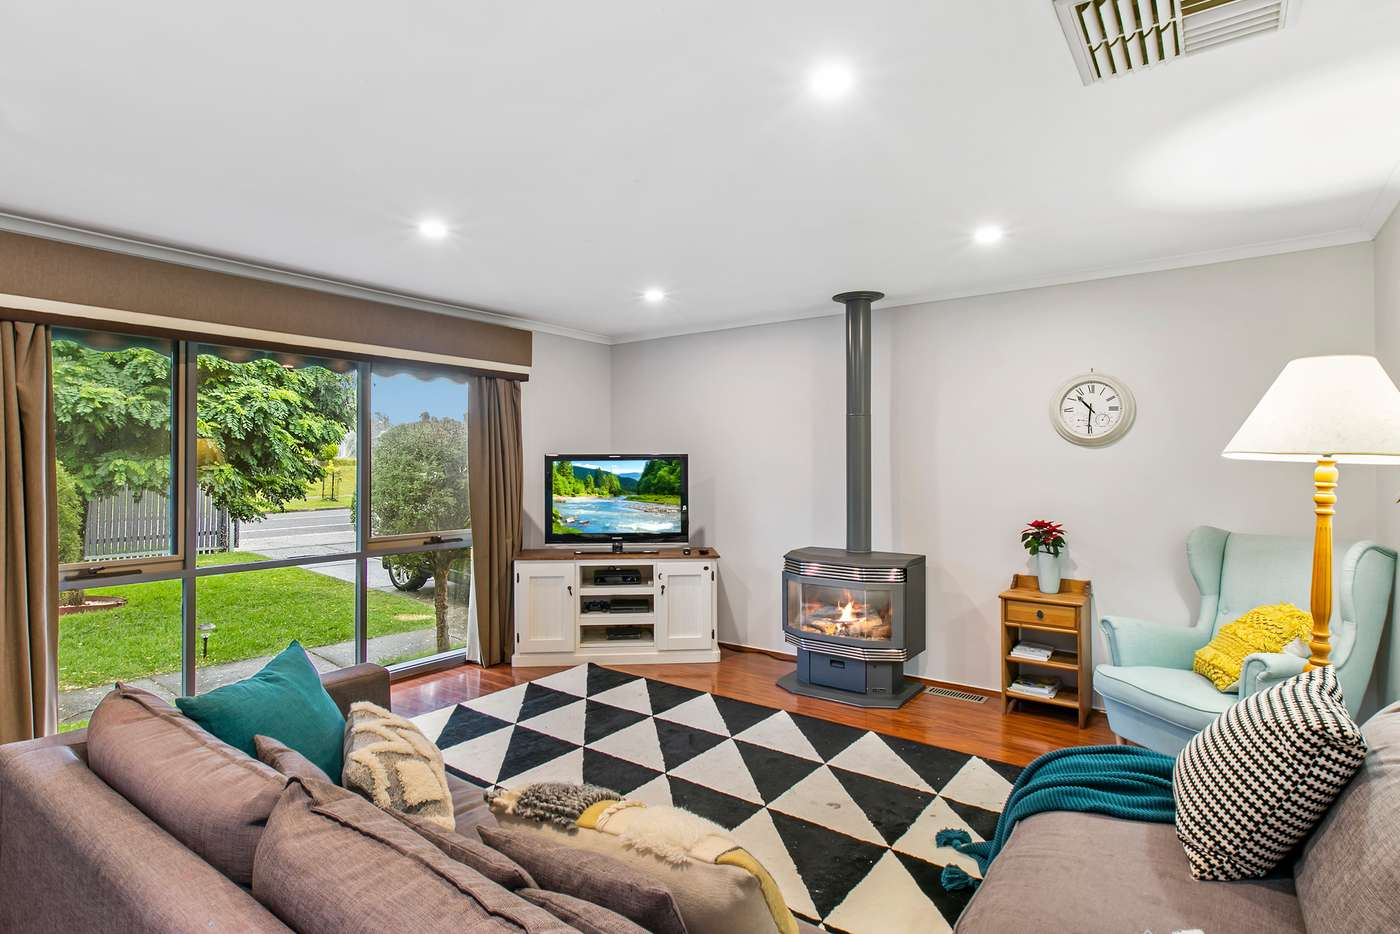 Fifth view of Homely house listing, 50 Nettle Drive, Hallam VIC 3803